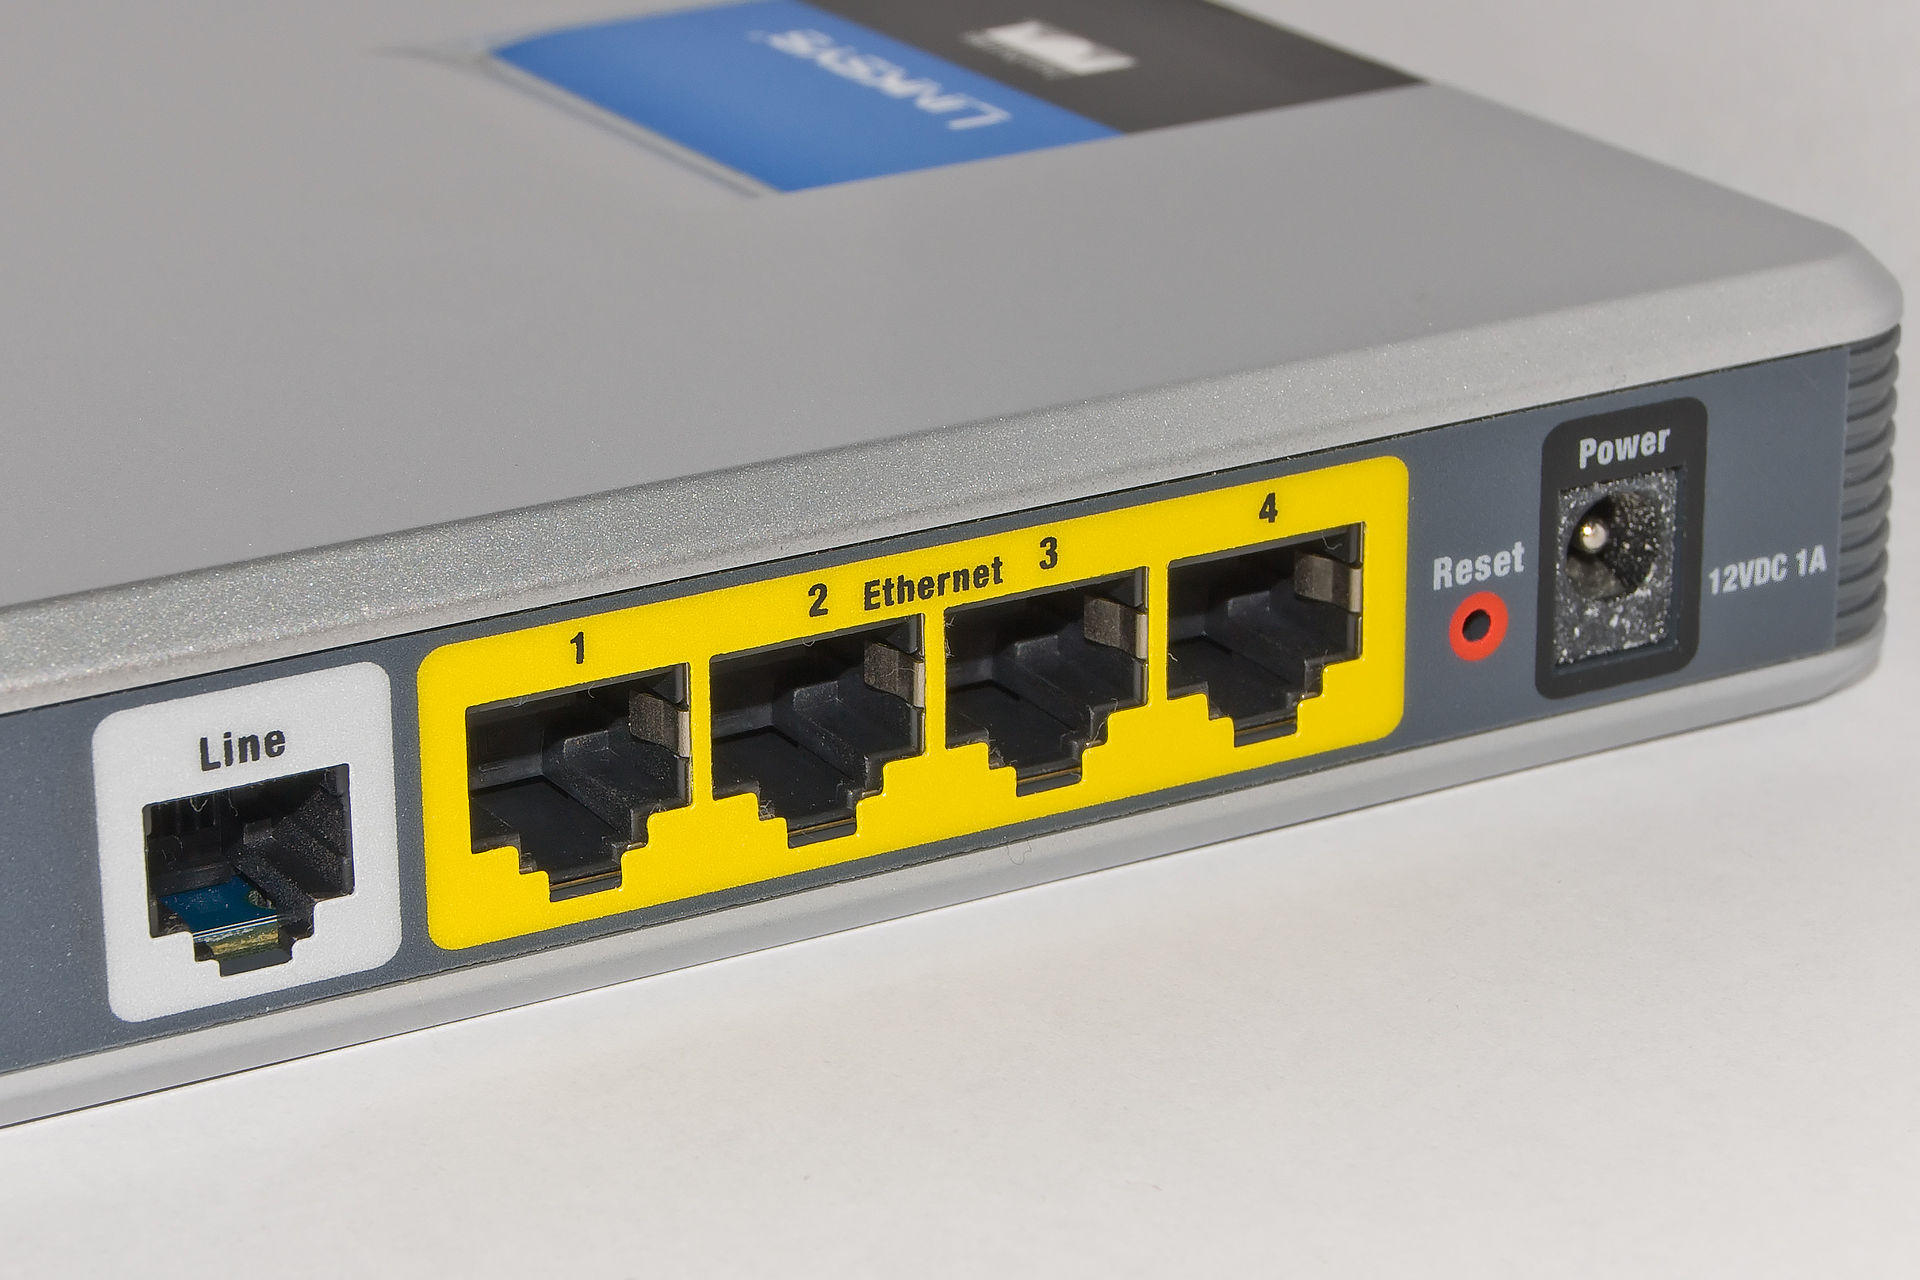 Example of a router on which you can perform port forwarding